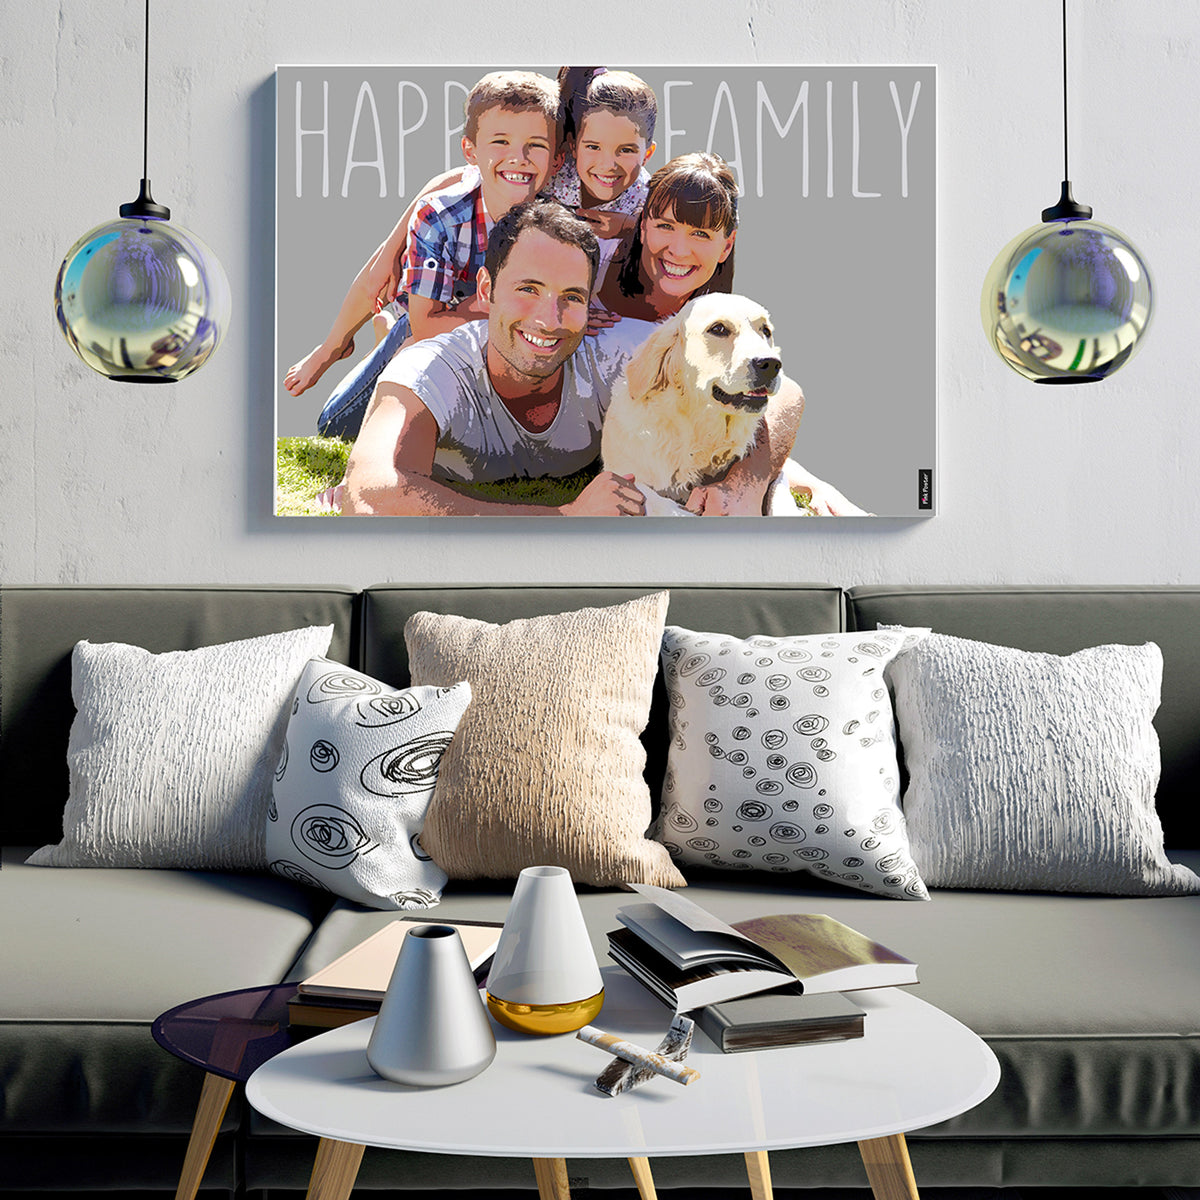 custom pop art canvas - Custom  wallart of happy family on canvas displayed in a nice living room